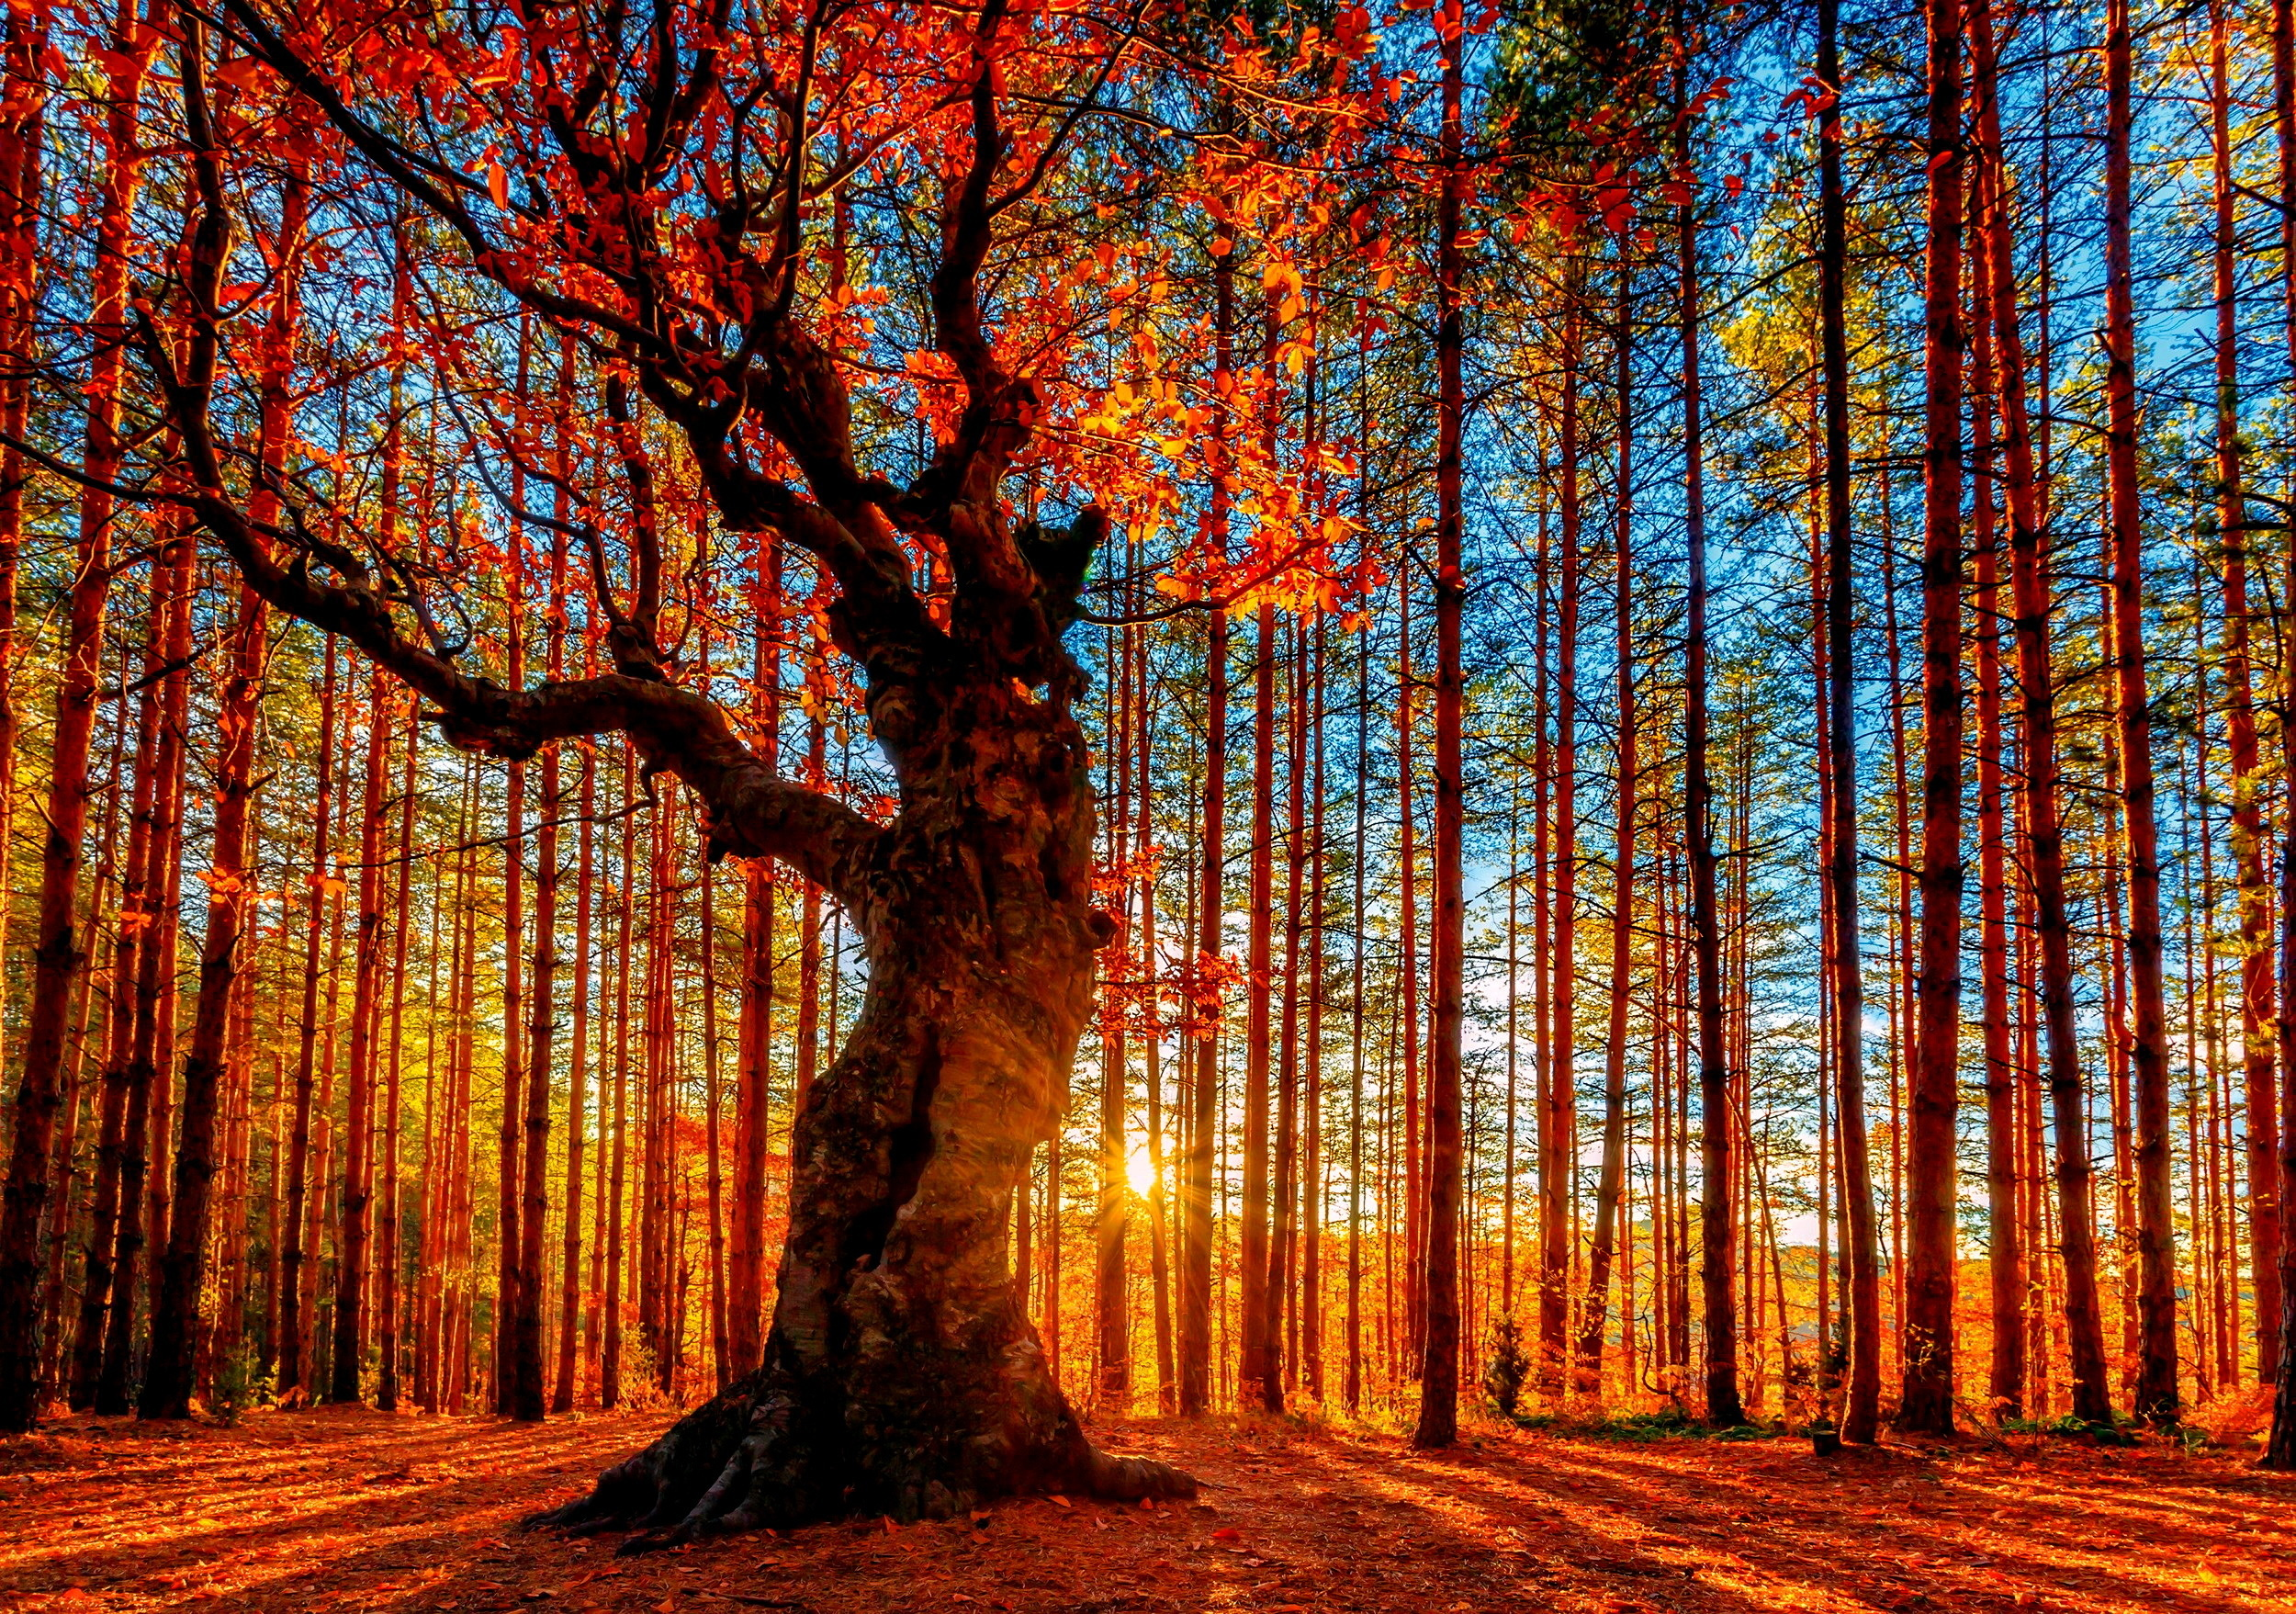 Forest Sky Trees Autumn Foliage Wallpaper